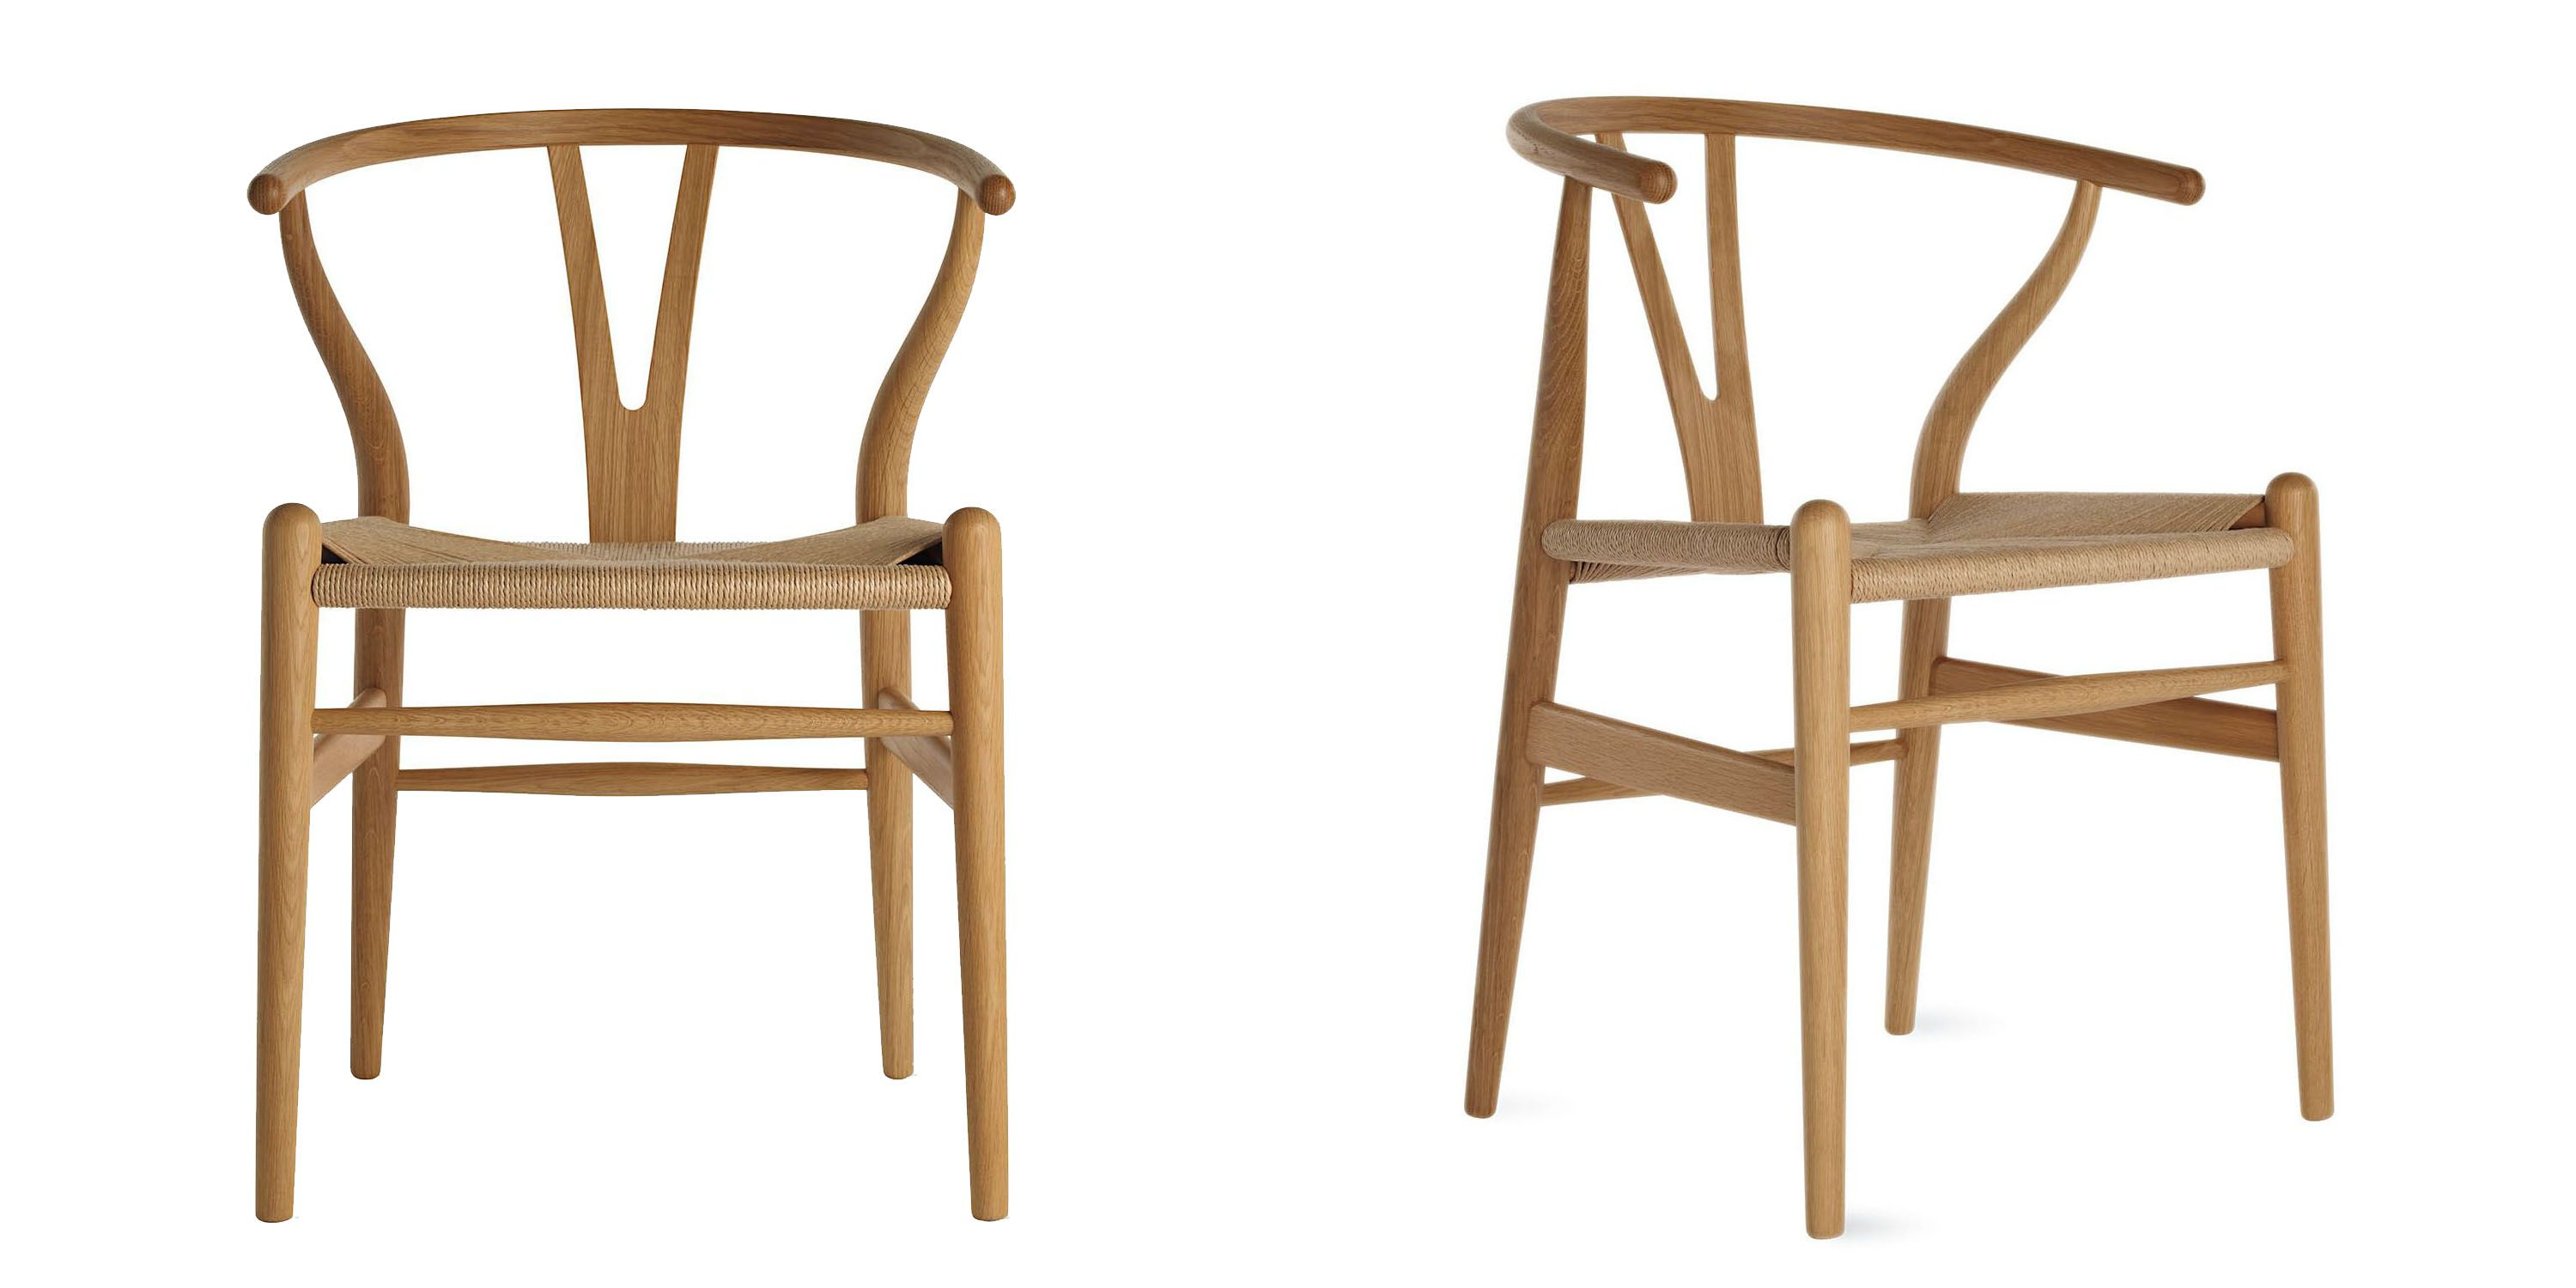 Bon The History Of The Wishbone Chair: 5 Unexpected Facts About Hans Wegneru0027s  Iconic Seat